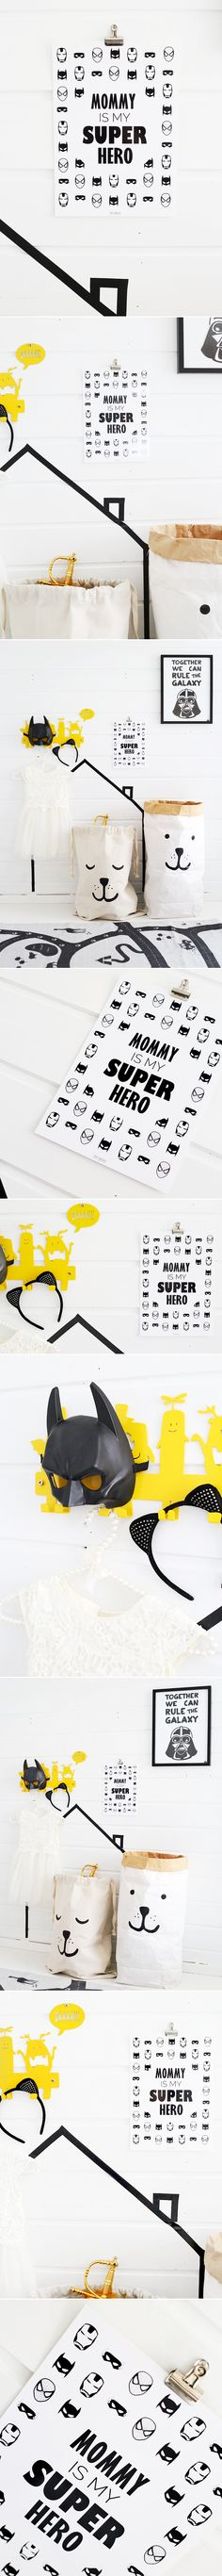 What kid needs superheroes when they have a mommy, right? Modern kids room / nursery poster for every child who loves Superman, Spider-Man, Batman, The Flash ++.Darth Vader / Star Wars Typography Print is also from my online shop. Buy it at epicdesignshop.com   http://www.reidunbeate.com/2016/02/20/mommy-is-my-superhero-kids-room-poster/